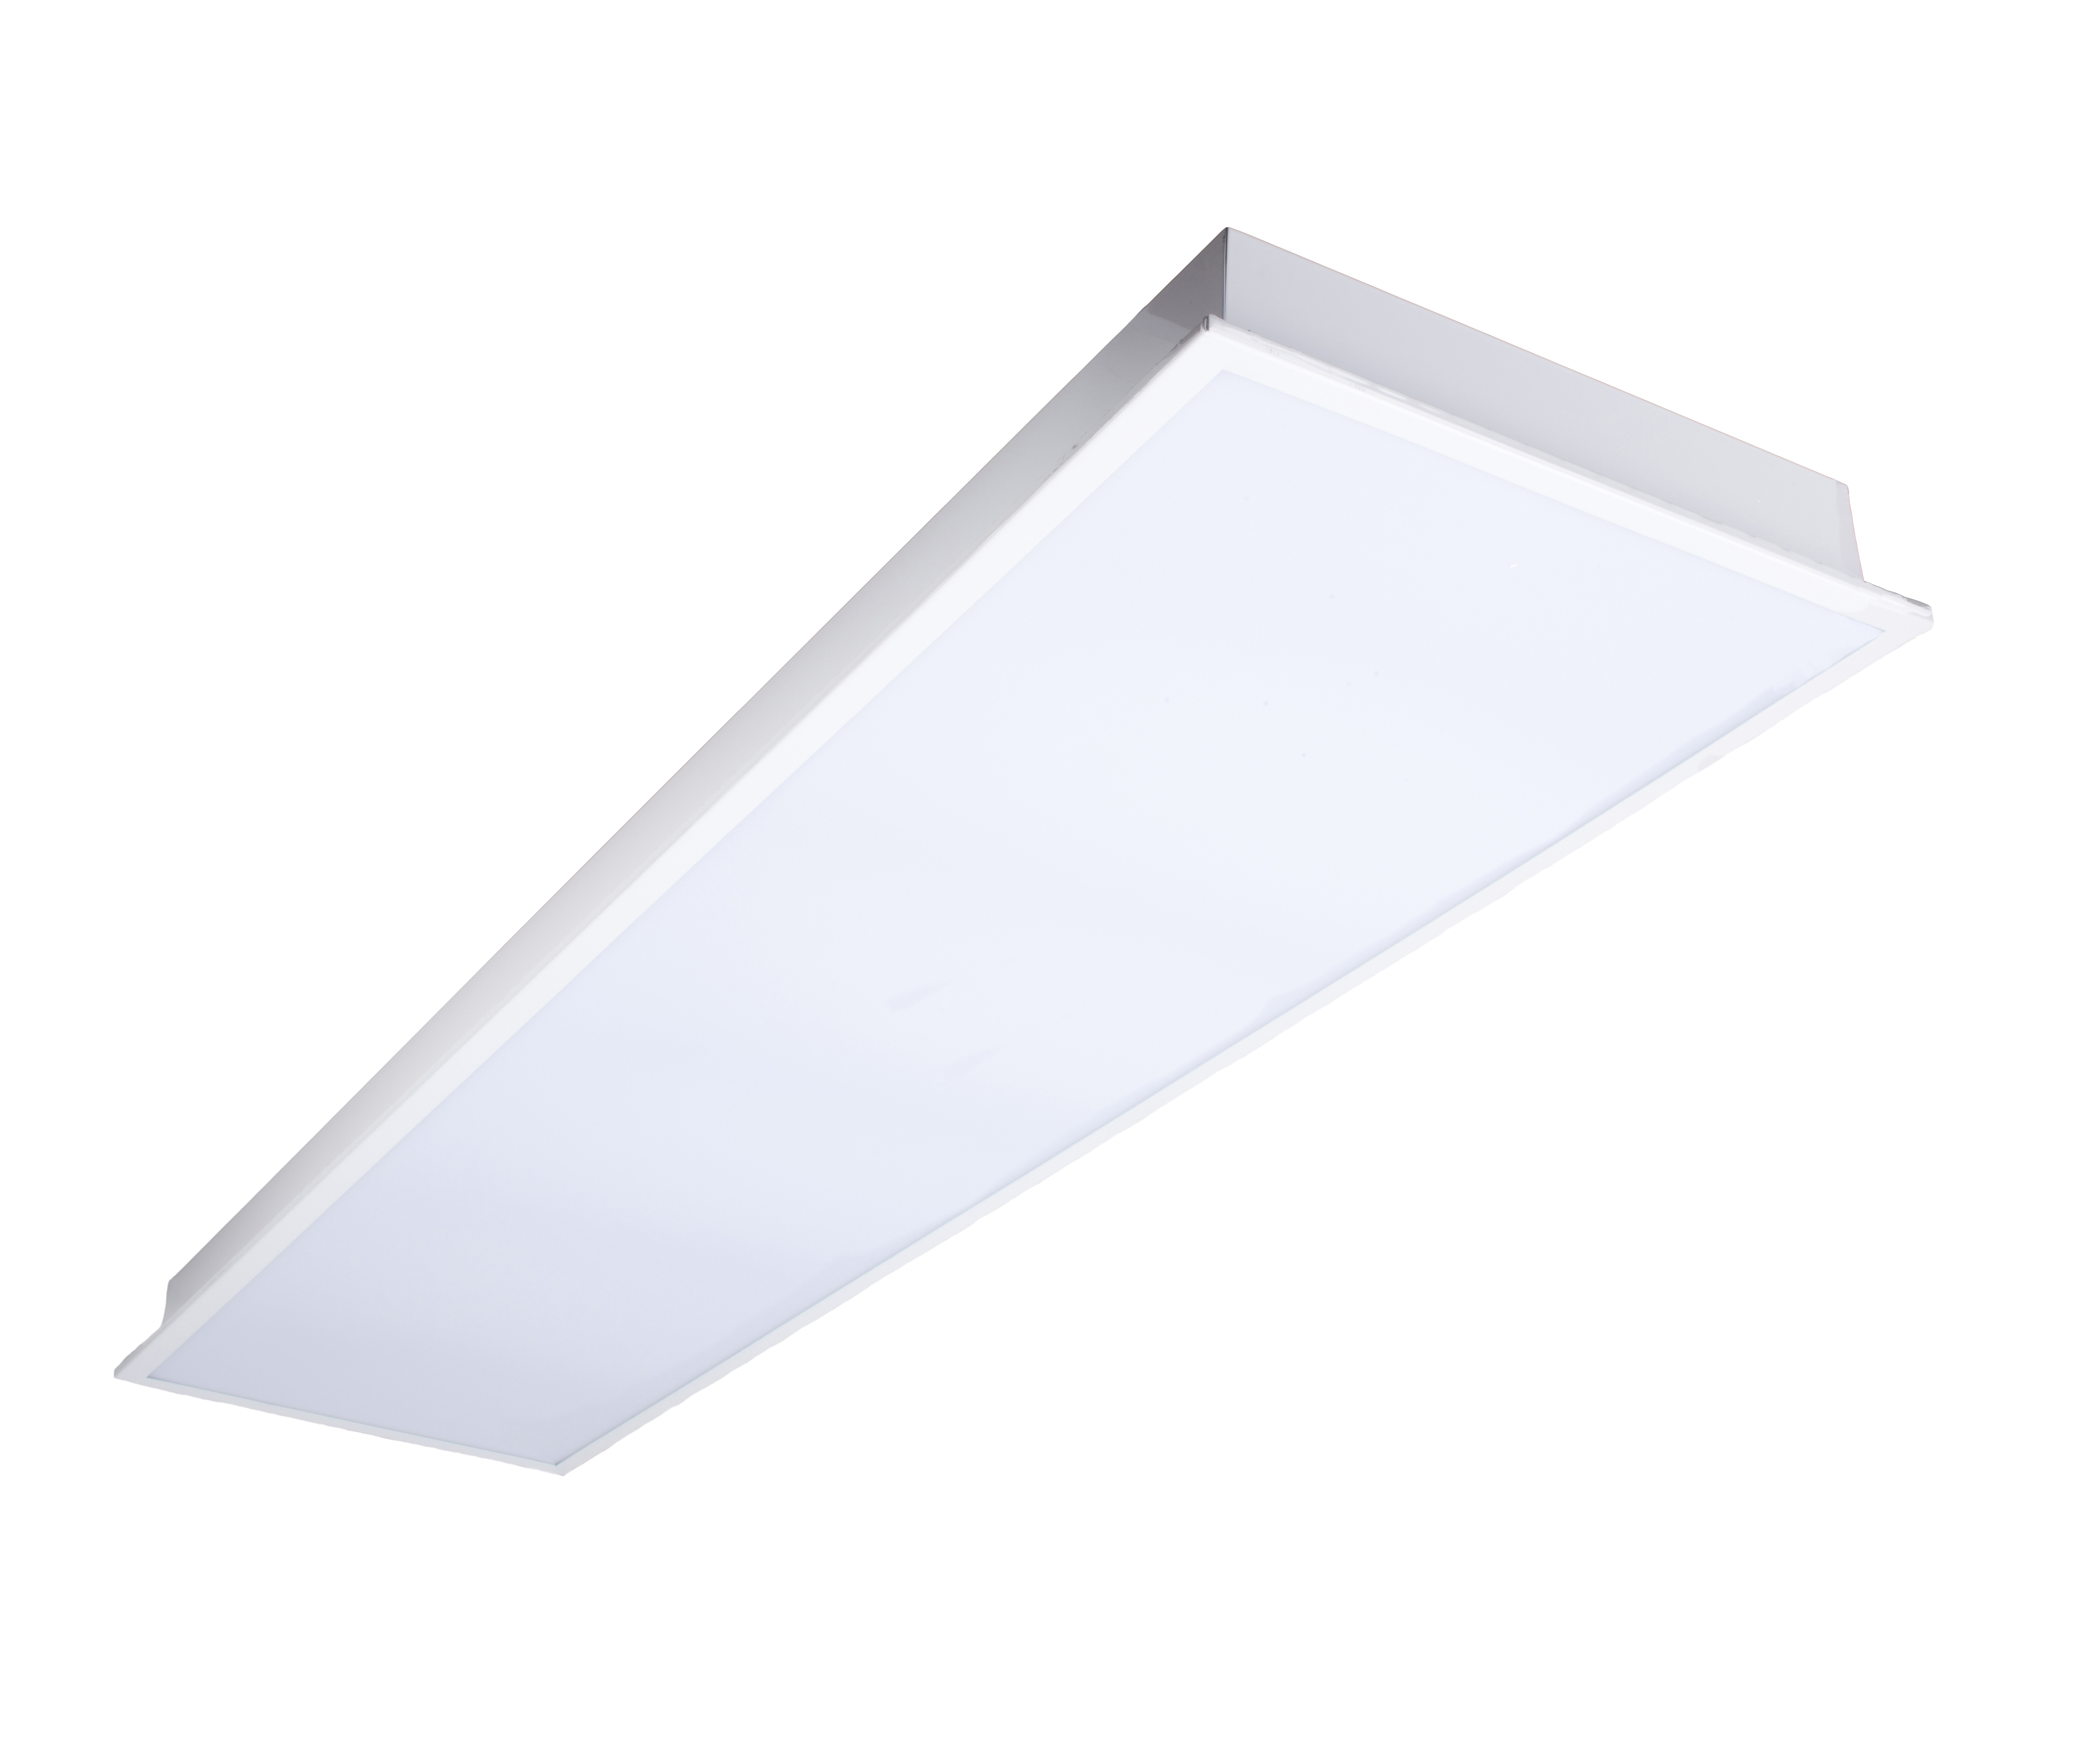 14PNL35/840/LED 80908 LED FLAT PANEL 1x4 35W 4000K DIMMABLE ProLED